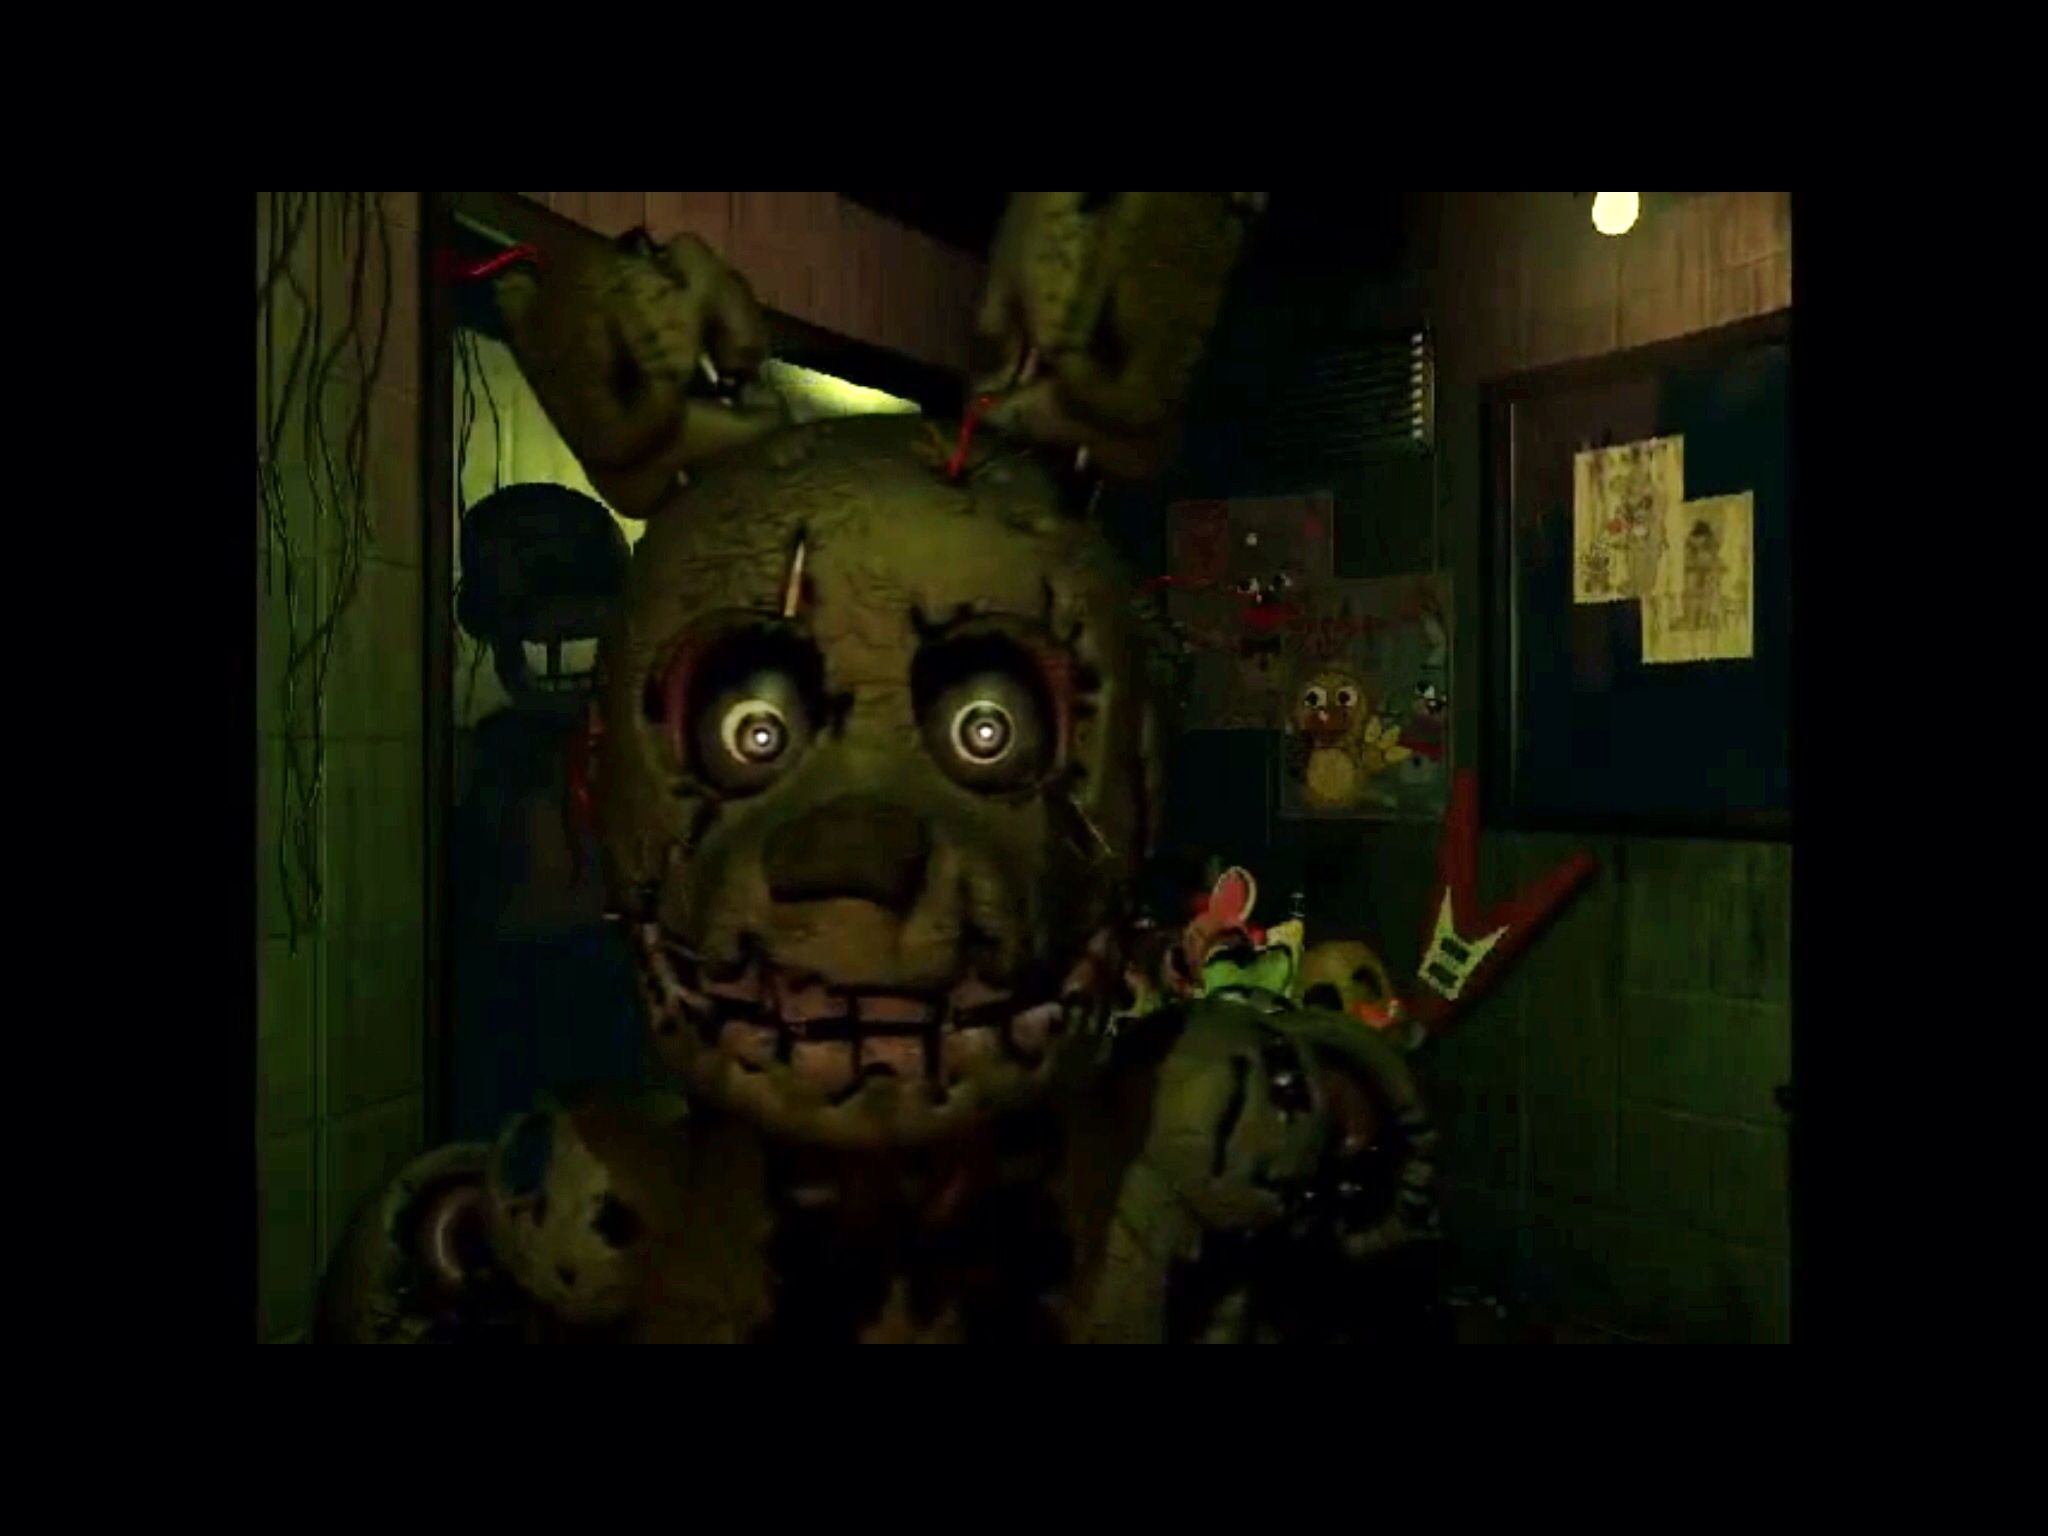 Guys The New Trailer For Five Nights At Freddy S 3 Is Out Its